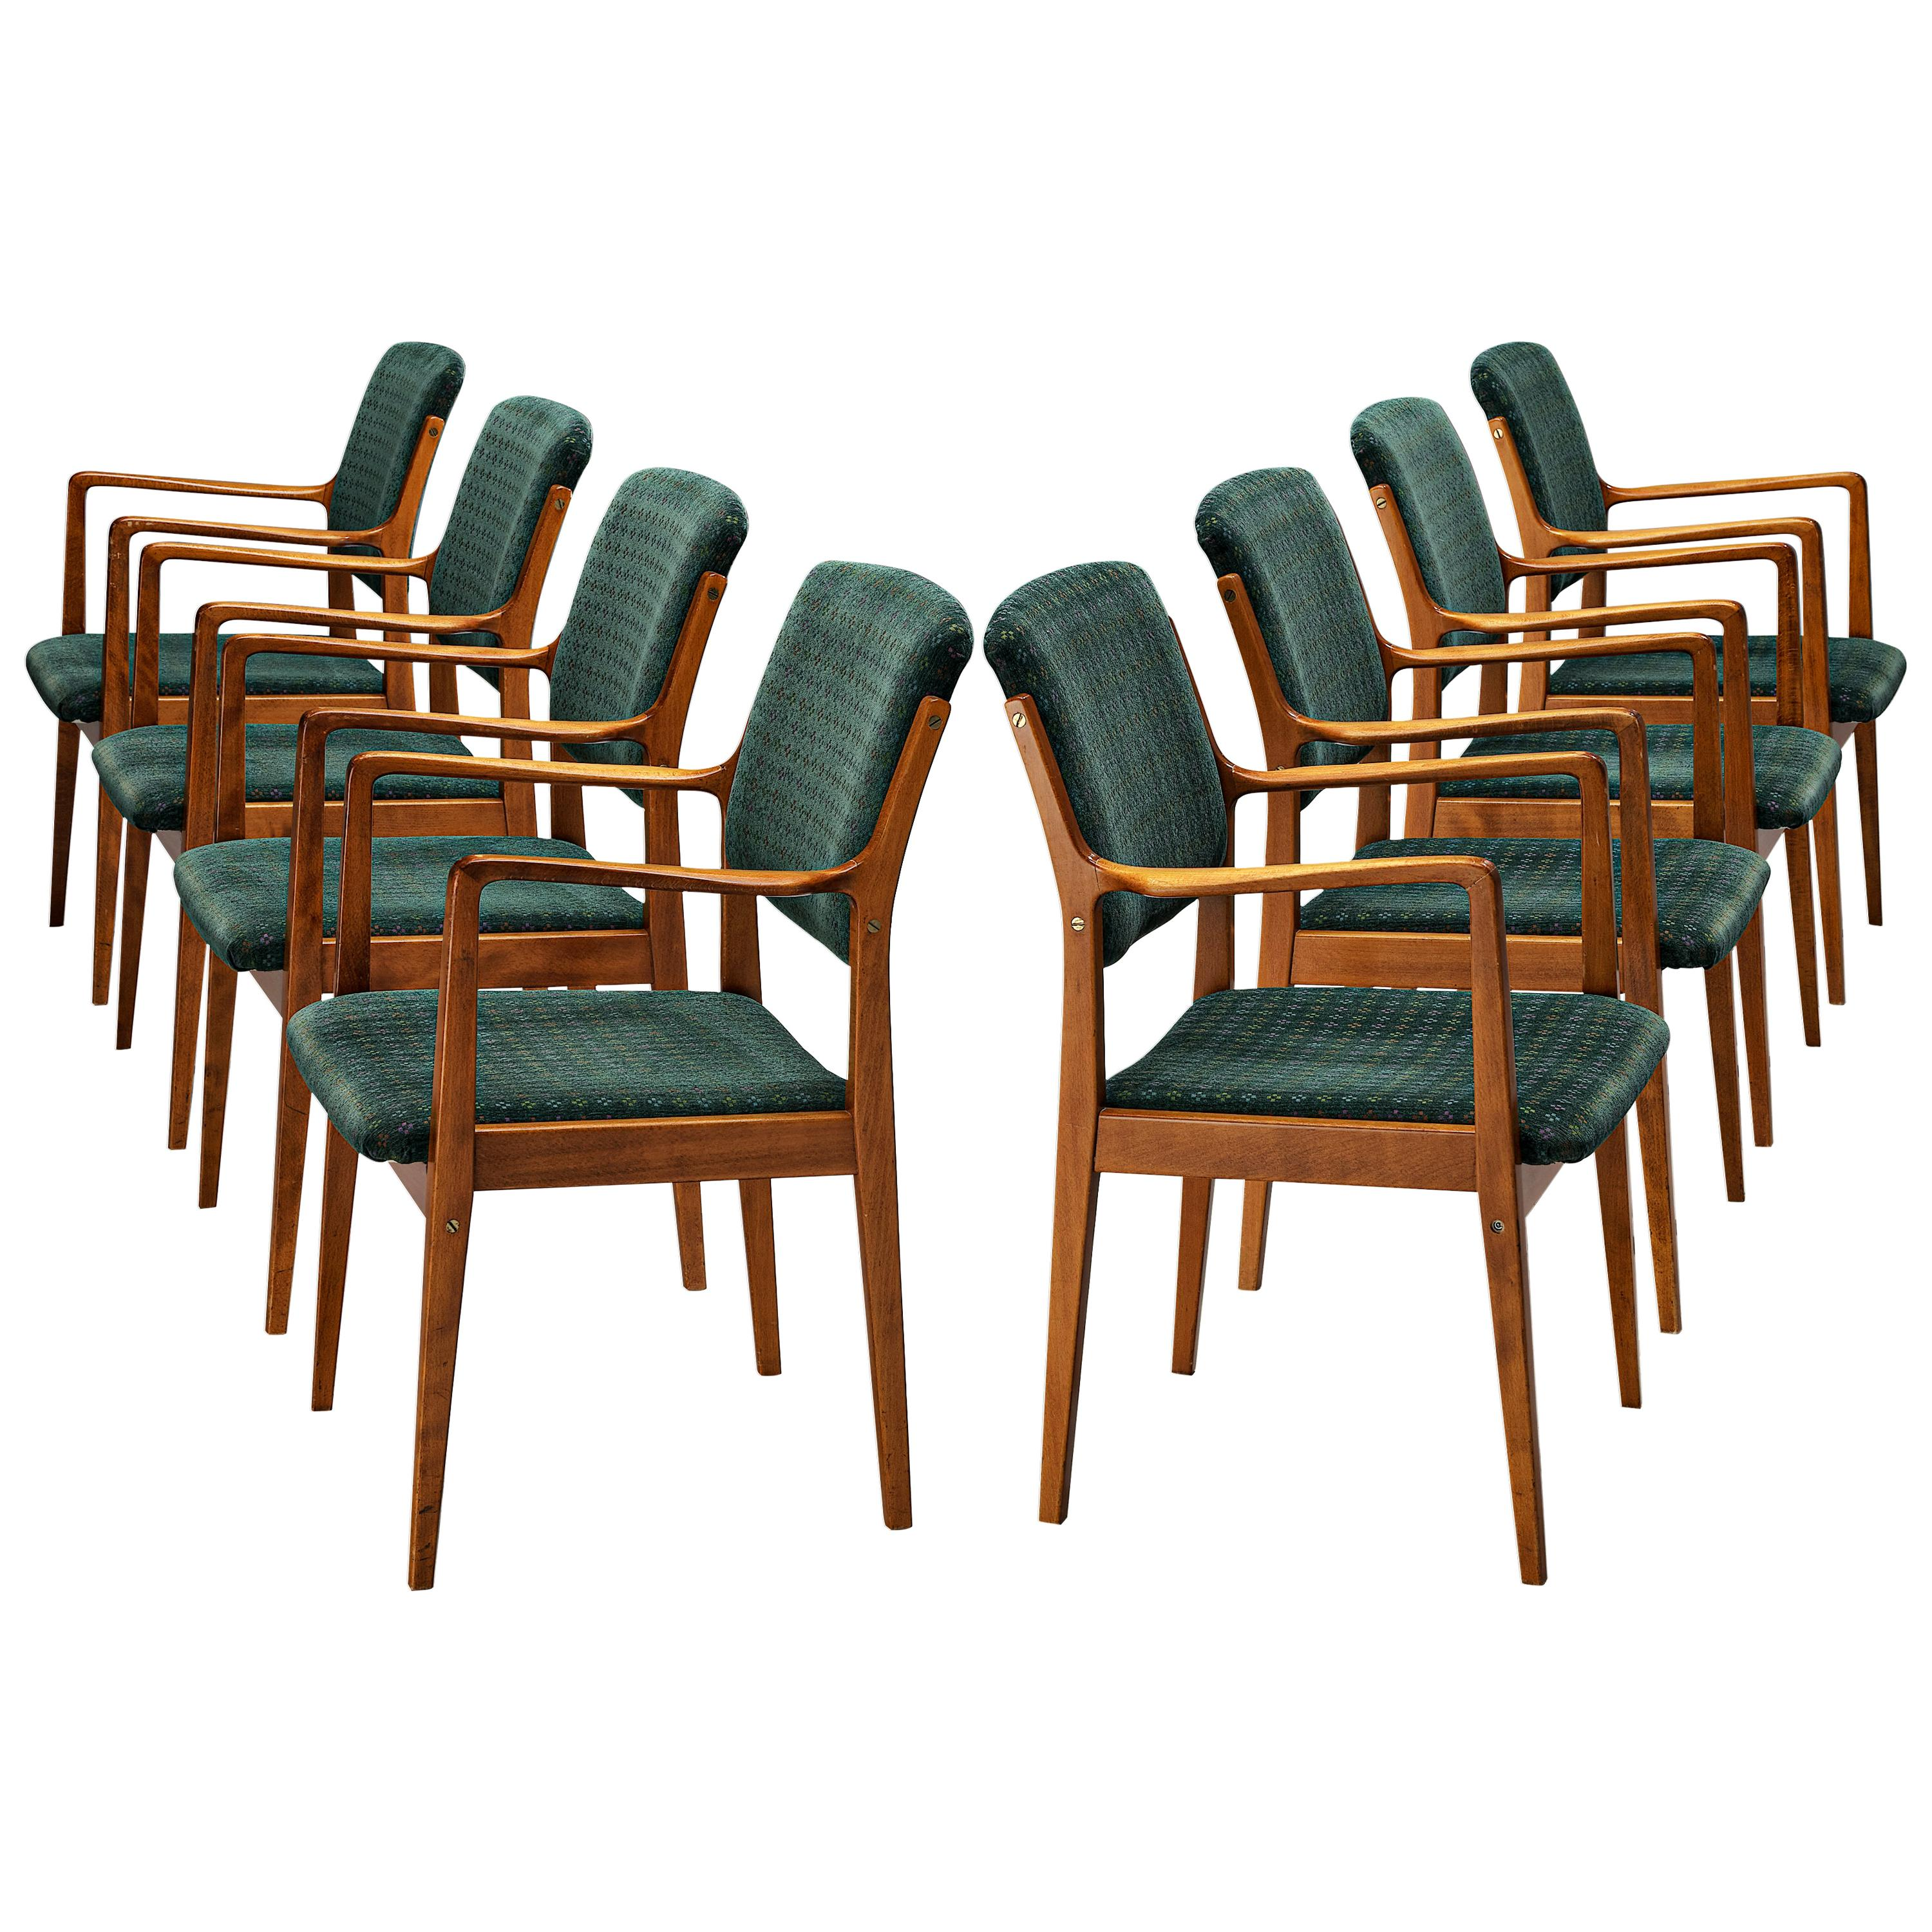 Set of Danish Armchairs in Teak and Green Upholstery